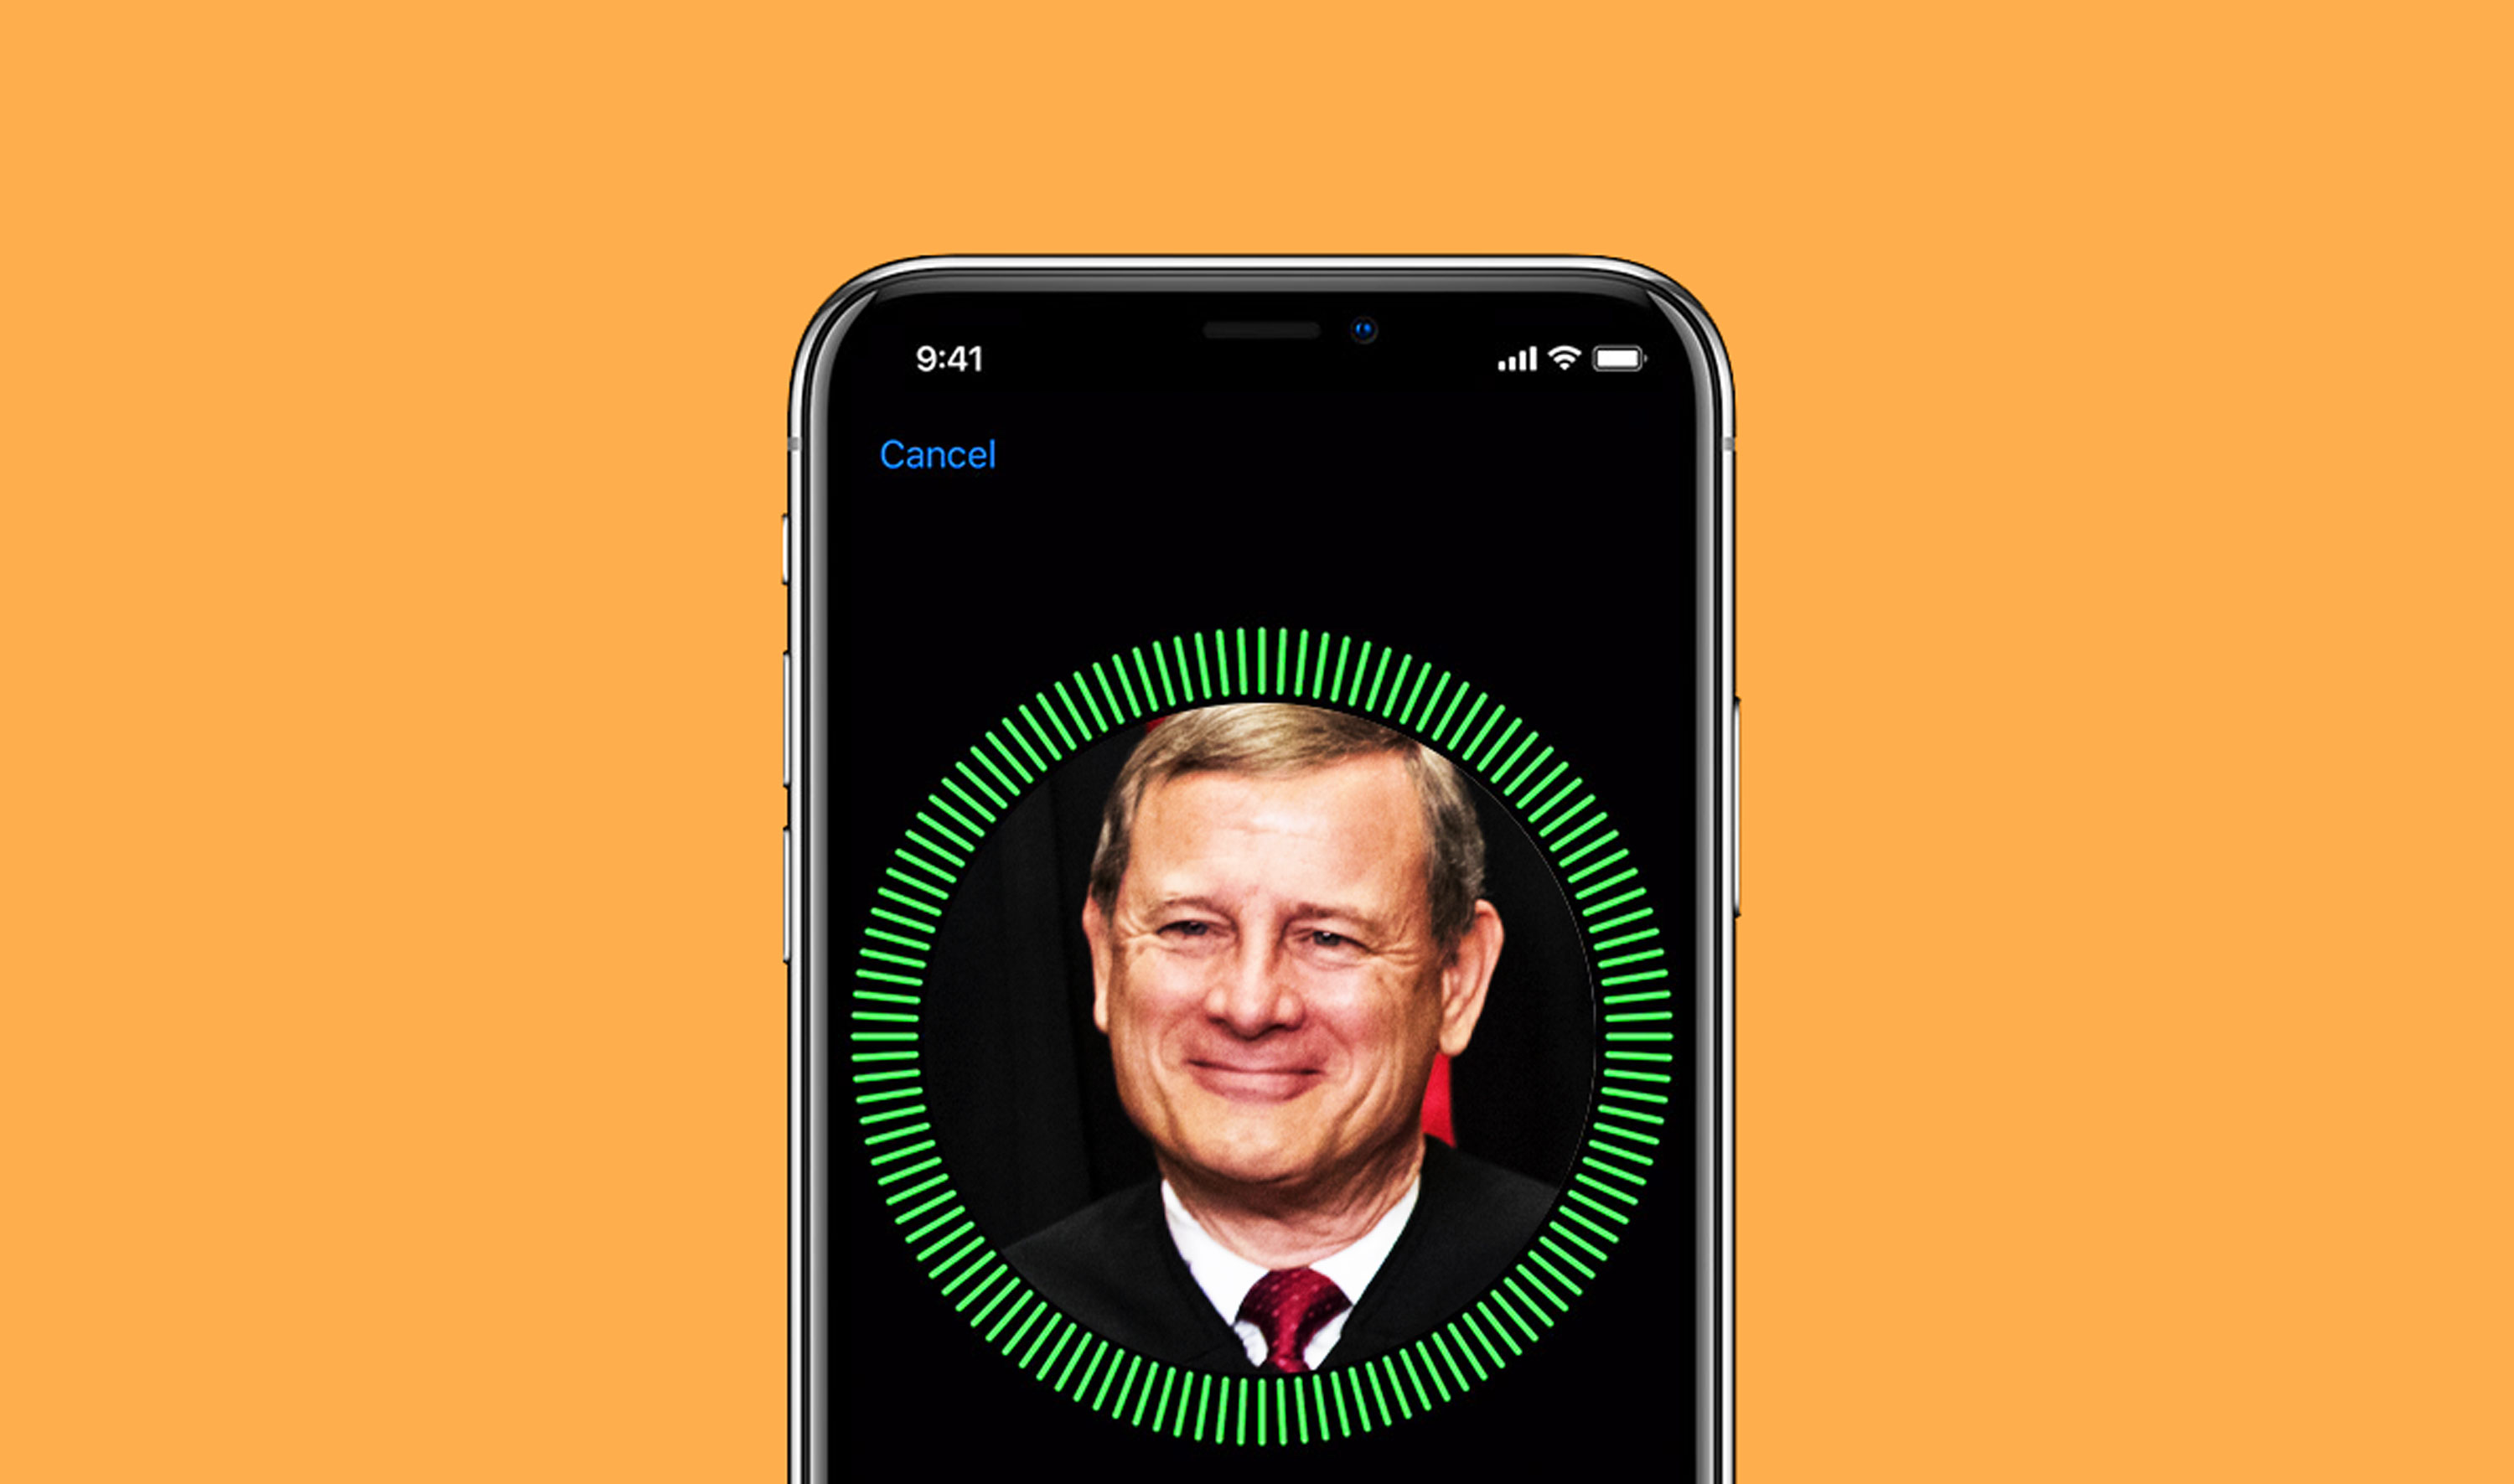 An iphone image showing Face ID set up screen with Justice John Roberts's face